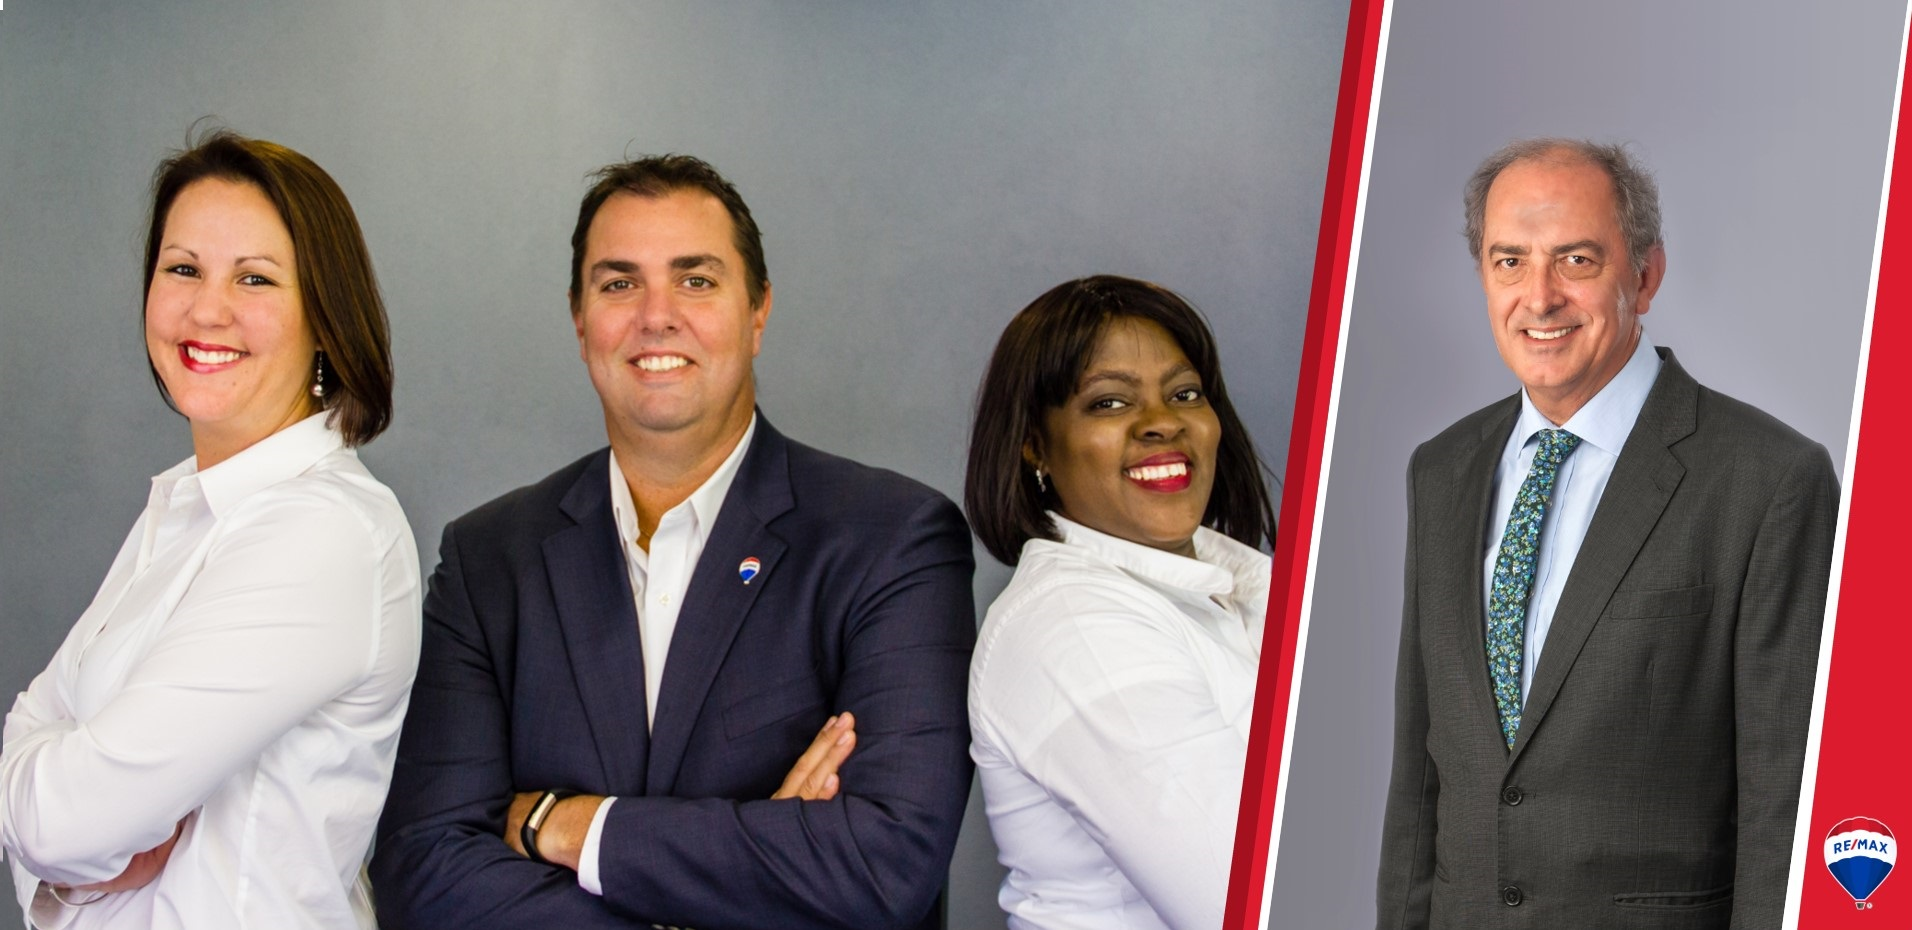 RE/MAX SA APPOINTS A NEW CHAIRMAN OF THE BOARD